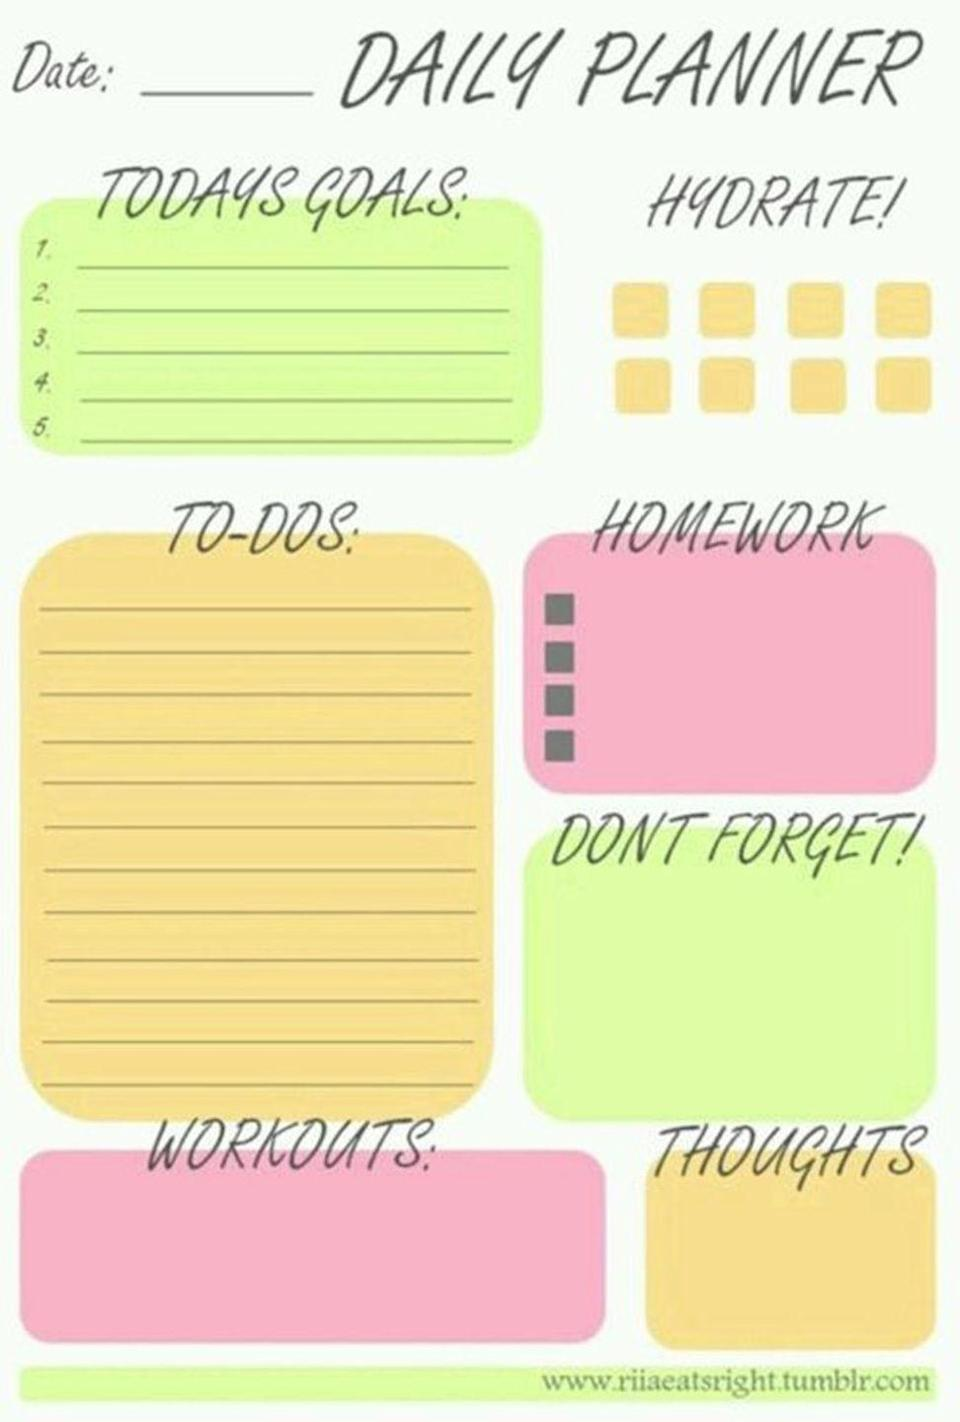 """<p>If a daily planner is more likely to work for you, create a to-do list of goals, your homework, deadlines etc each morning and see if you can stick to it throughout the day. </p><p>(<a href=""""https://www.pinterest.co.uk/pin/713046553472732652/"""" rel=""""nofollow noopener"""" target=""""_blank"""" data-ylk=""""slk:via"""" class=""""link rapid-noclick-resp"""">via</a>)</p>"""